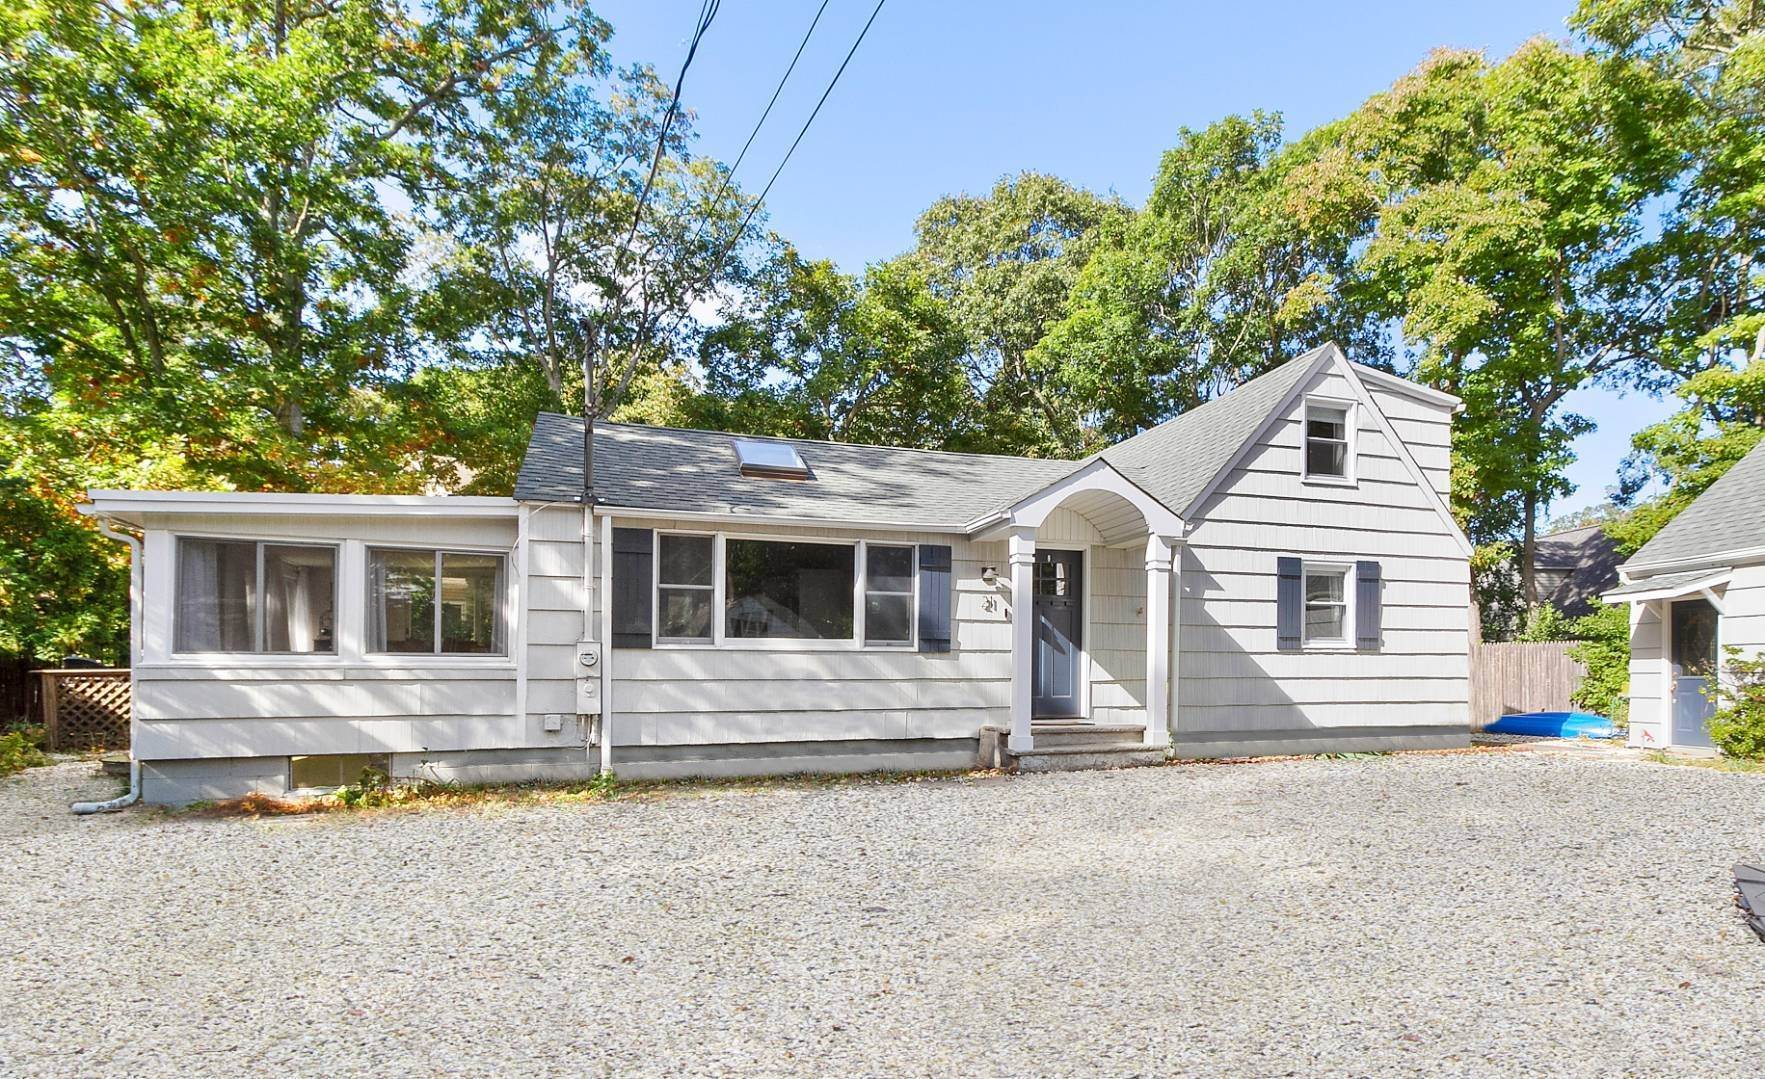 12. Single Family Home at Sag Harbor Beach Property For Rent 21 Elm Street, Sag Harbor, NY 11963